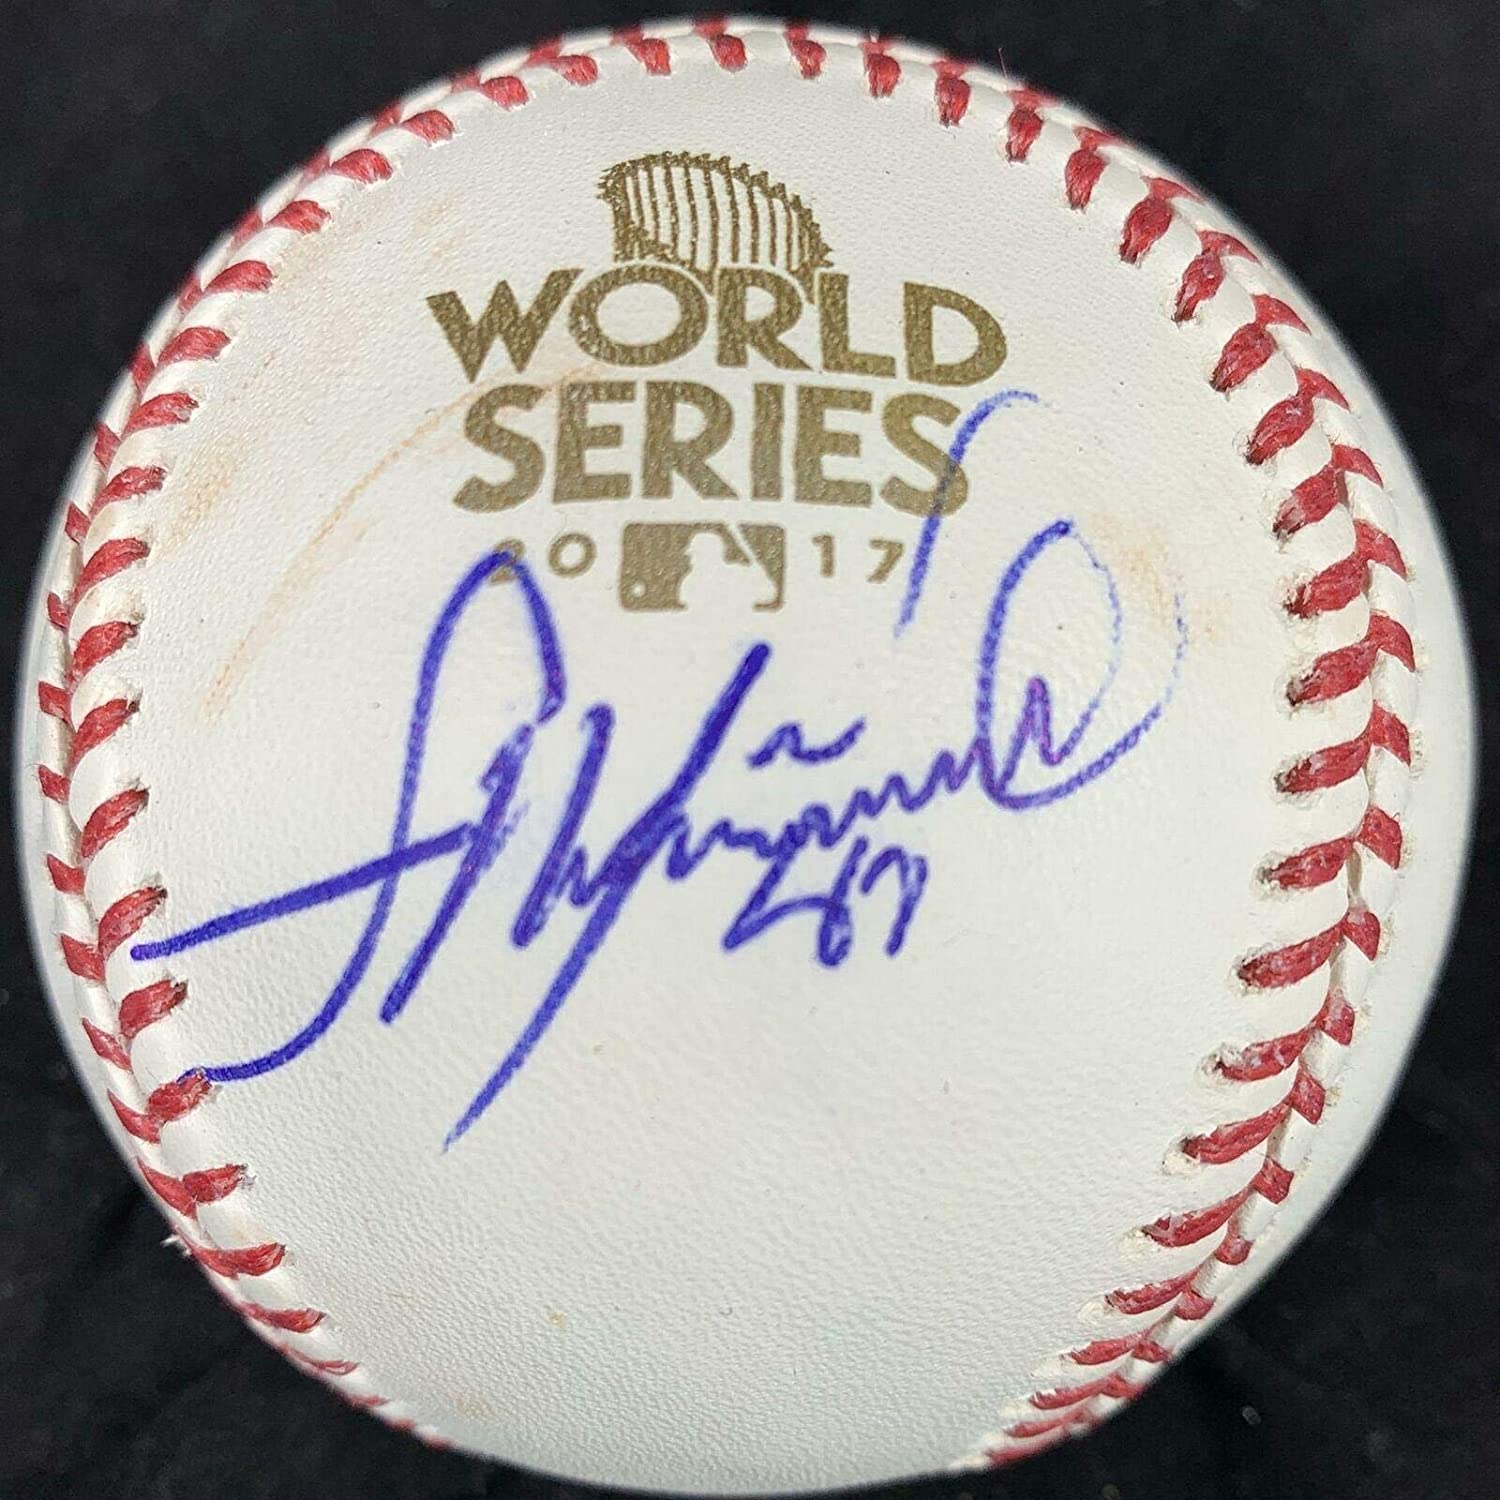 Francisco Liriano Autographed Ball - 2017 WS - PSA/DNA Certified - Autographed Baseballs